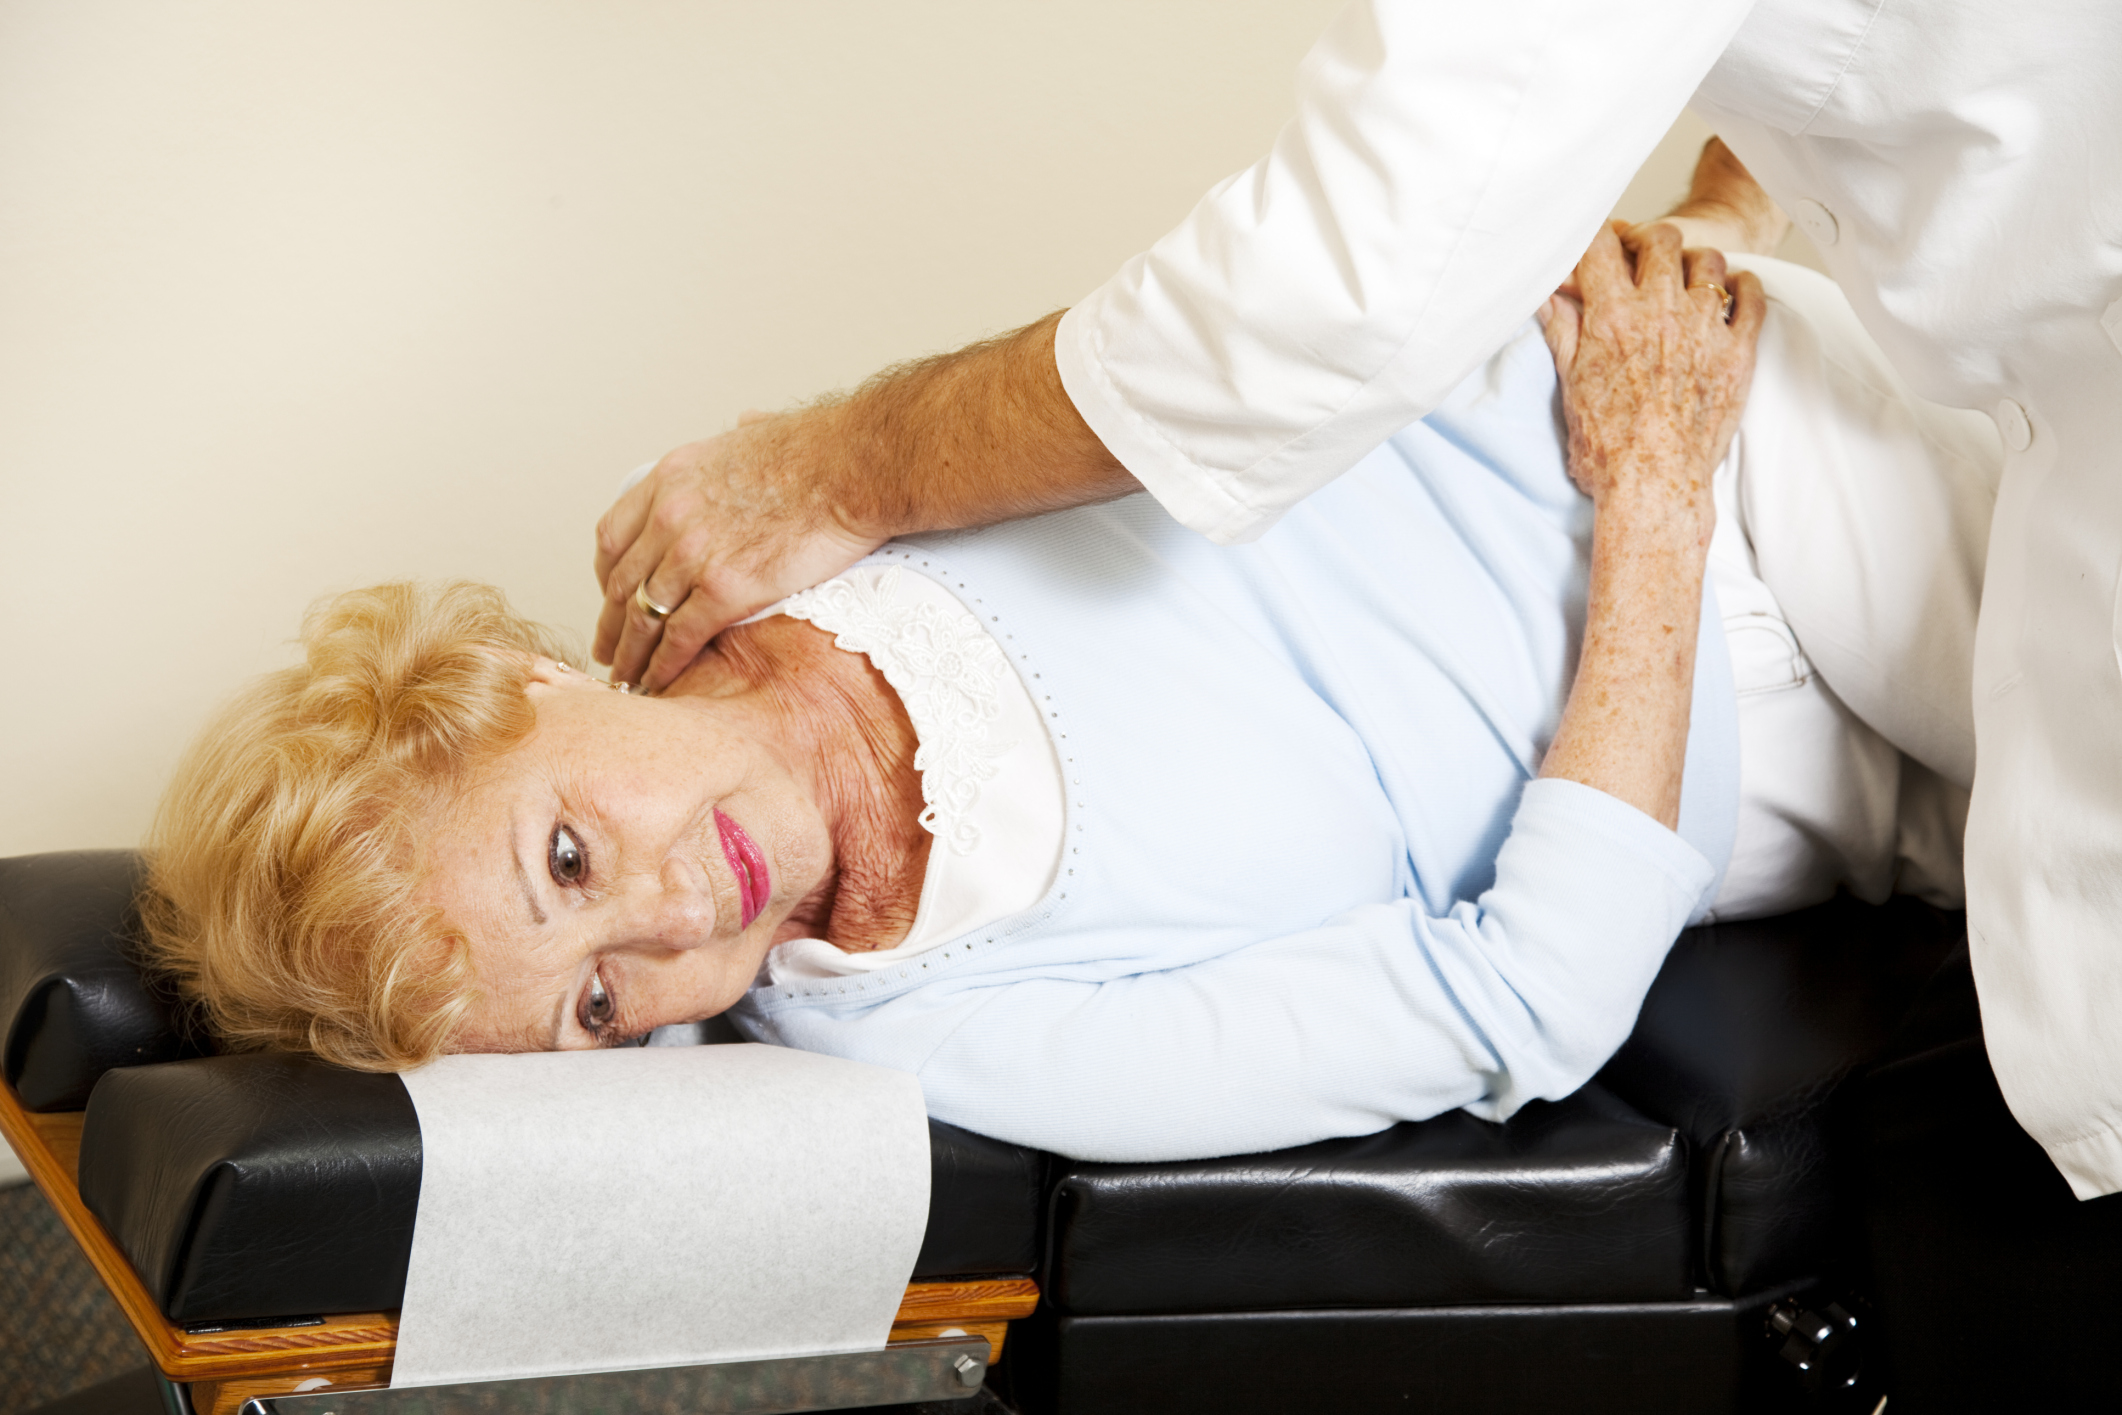 Common chiropractic table with woman